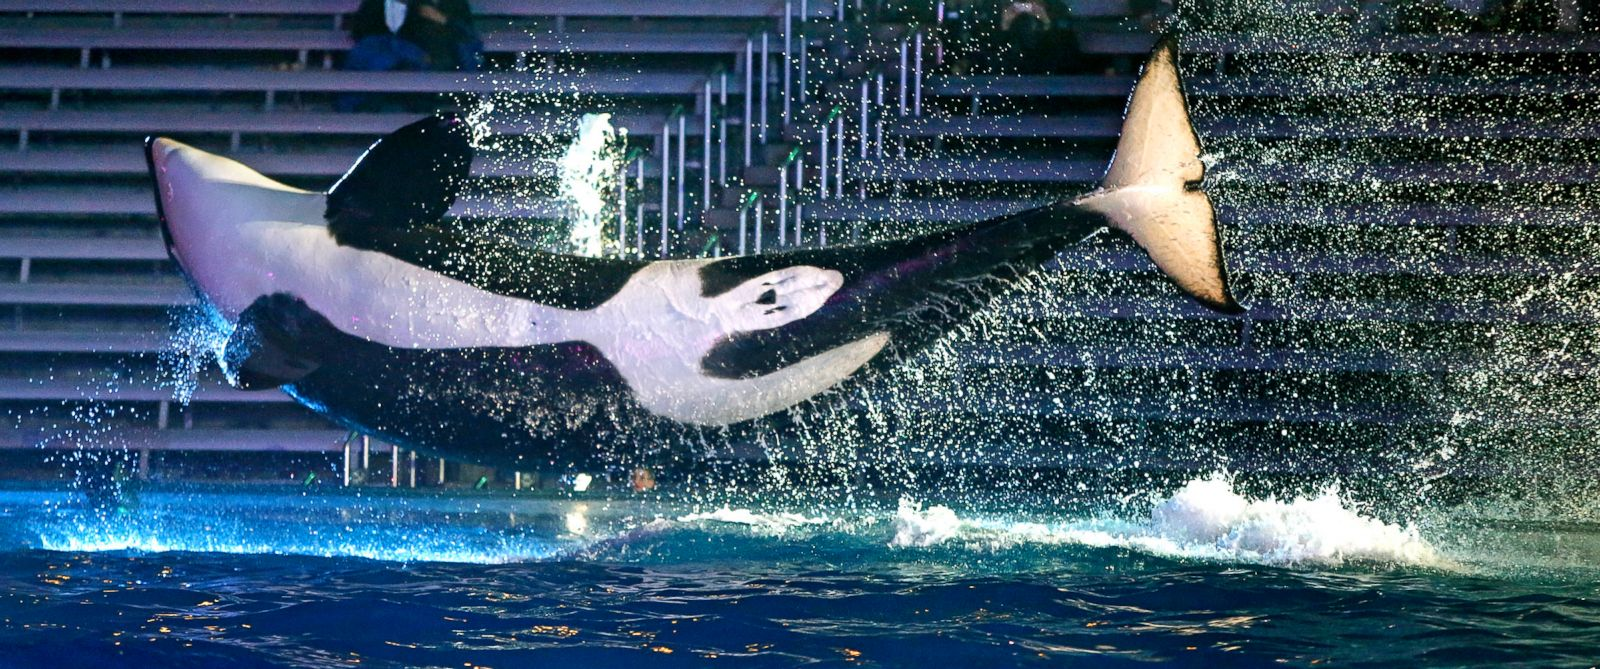 PHOTO: A trained orca whale leaps above the pool at Sea World, San Diego, March 20, 2014.